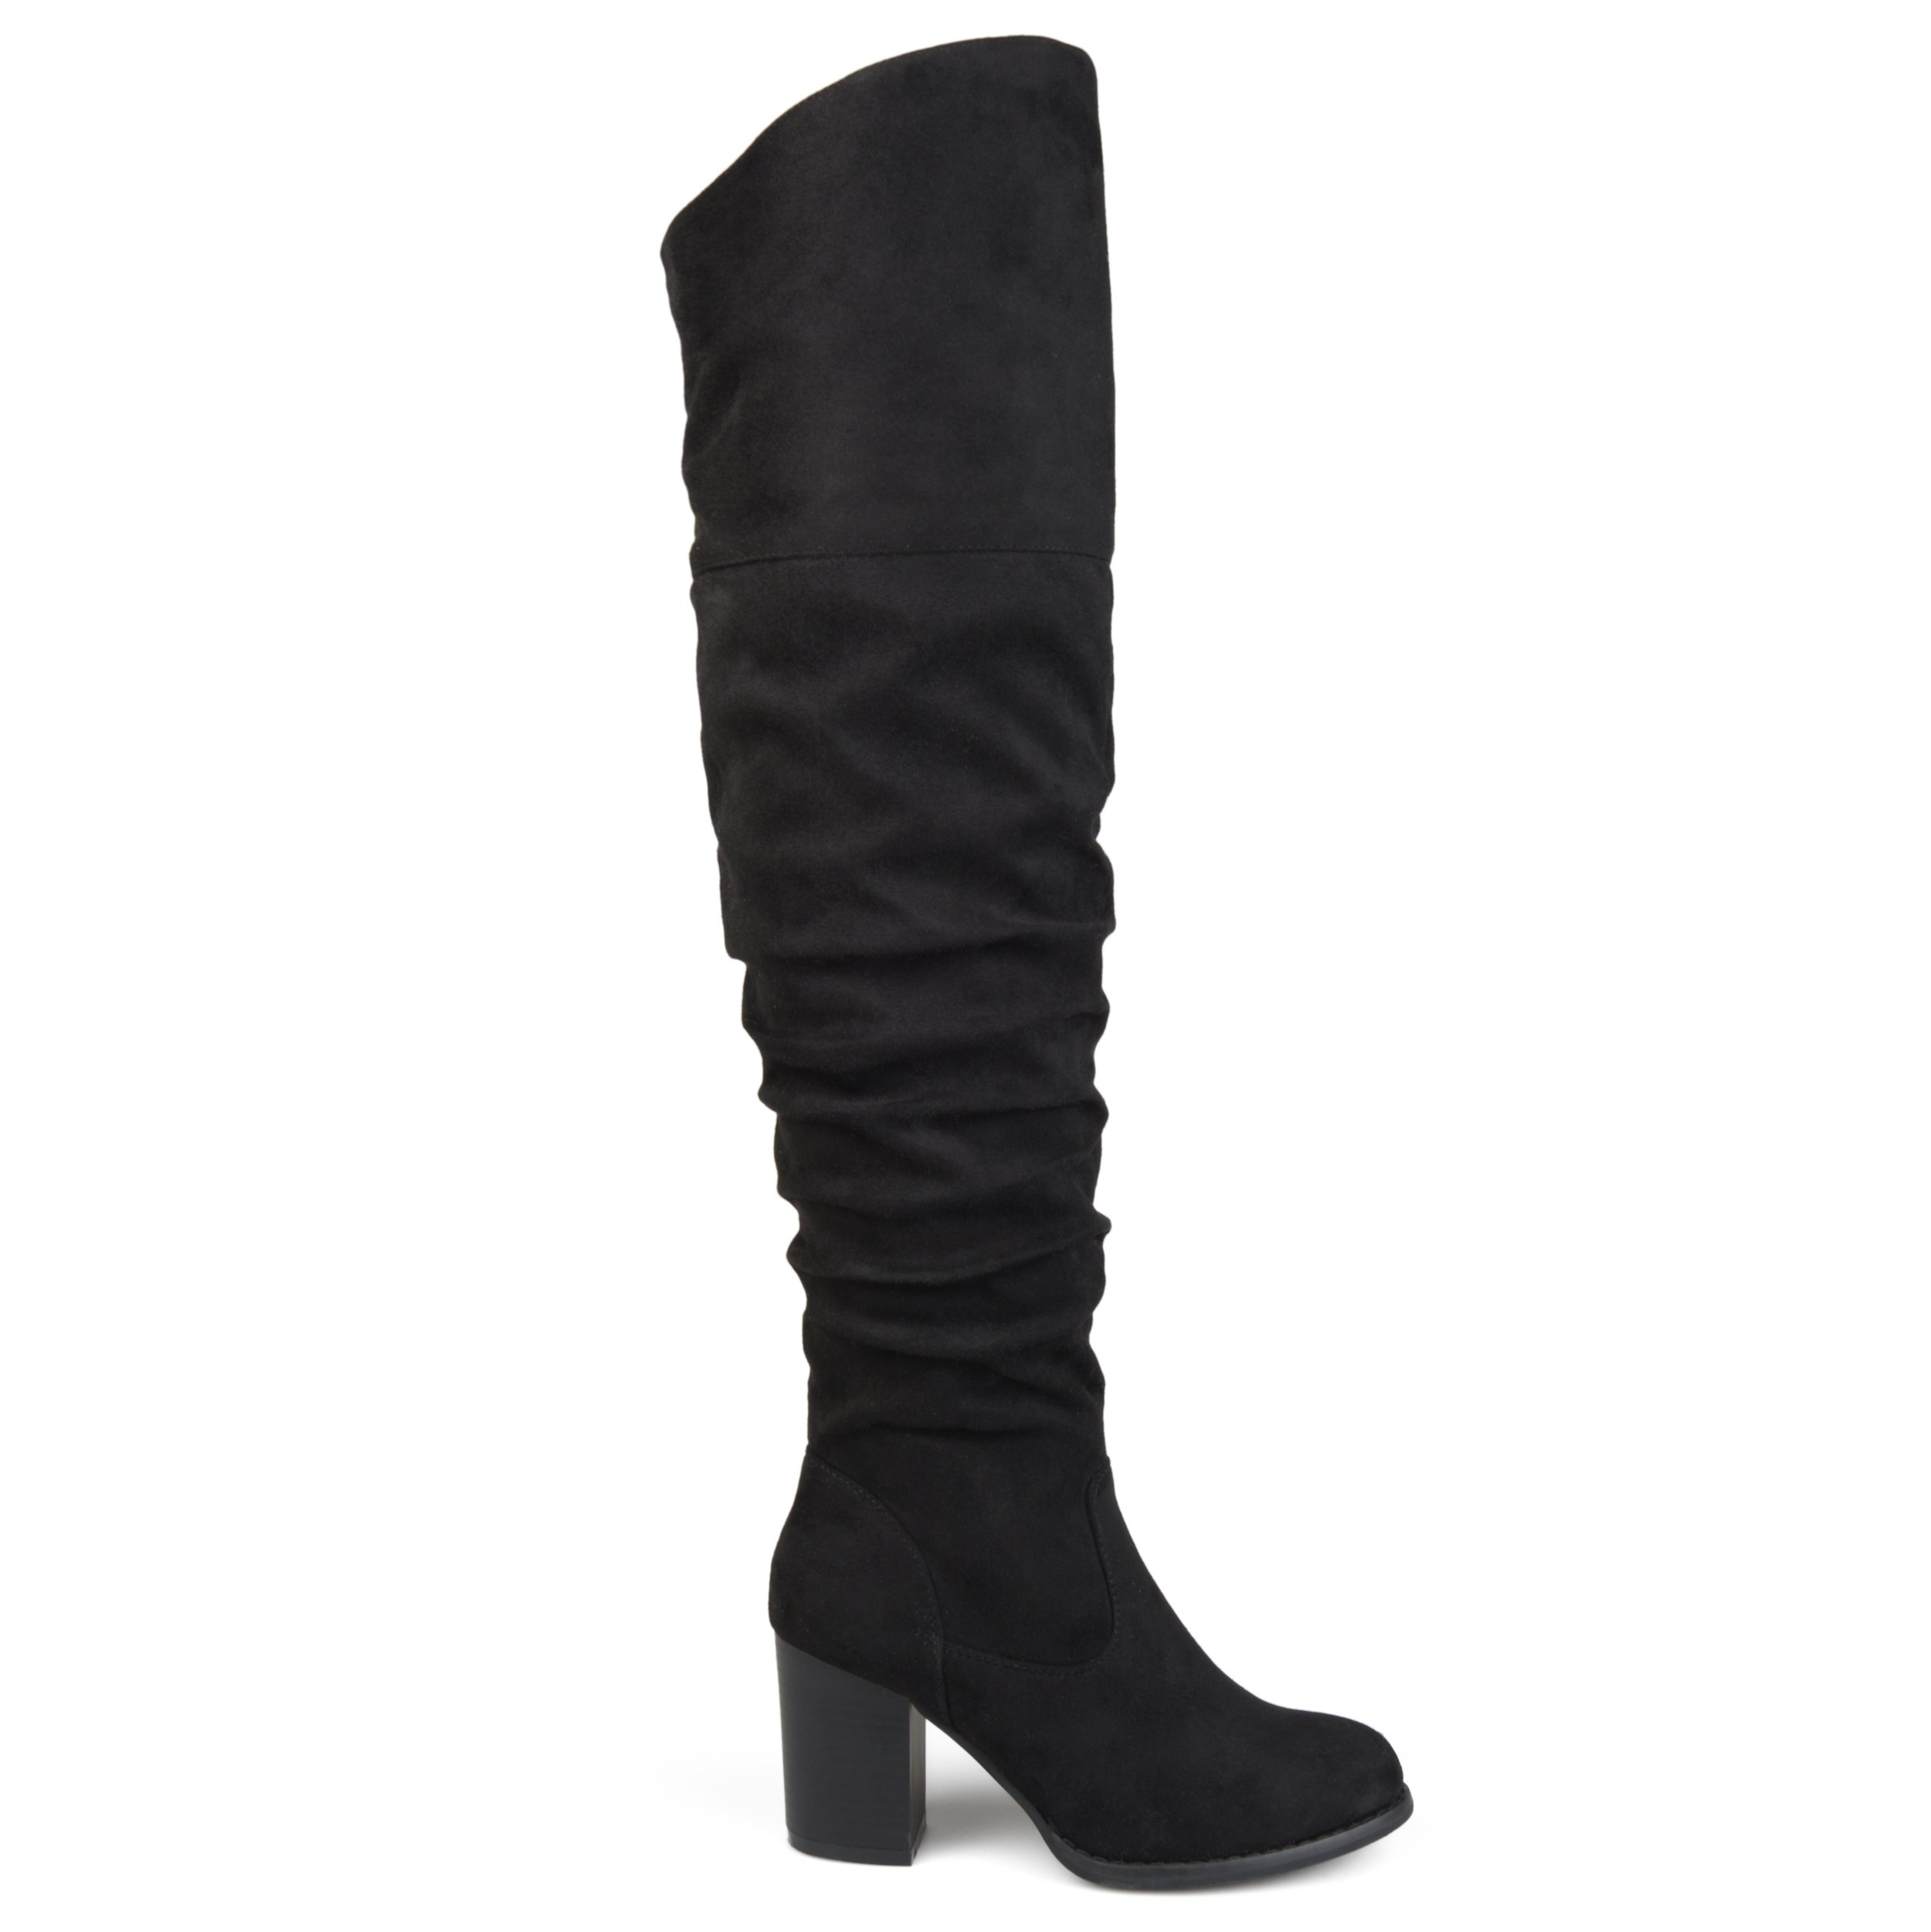 Brinley Co Womens Regular Wide Calf and Extra Wide Calf Ruched Stacked Heel Faux Suede Over-The-Knee Boots Black, 9 Wide Calf US